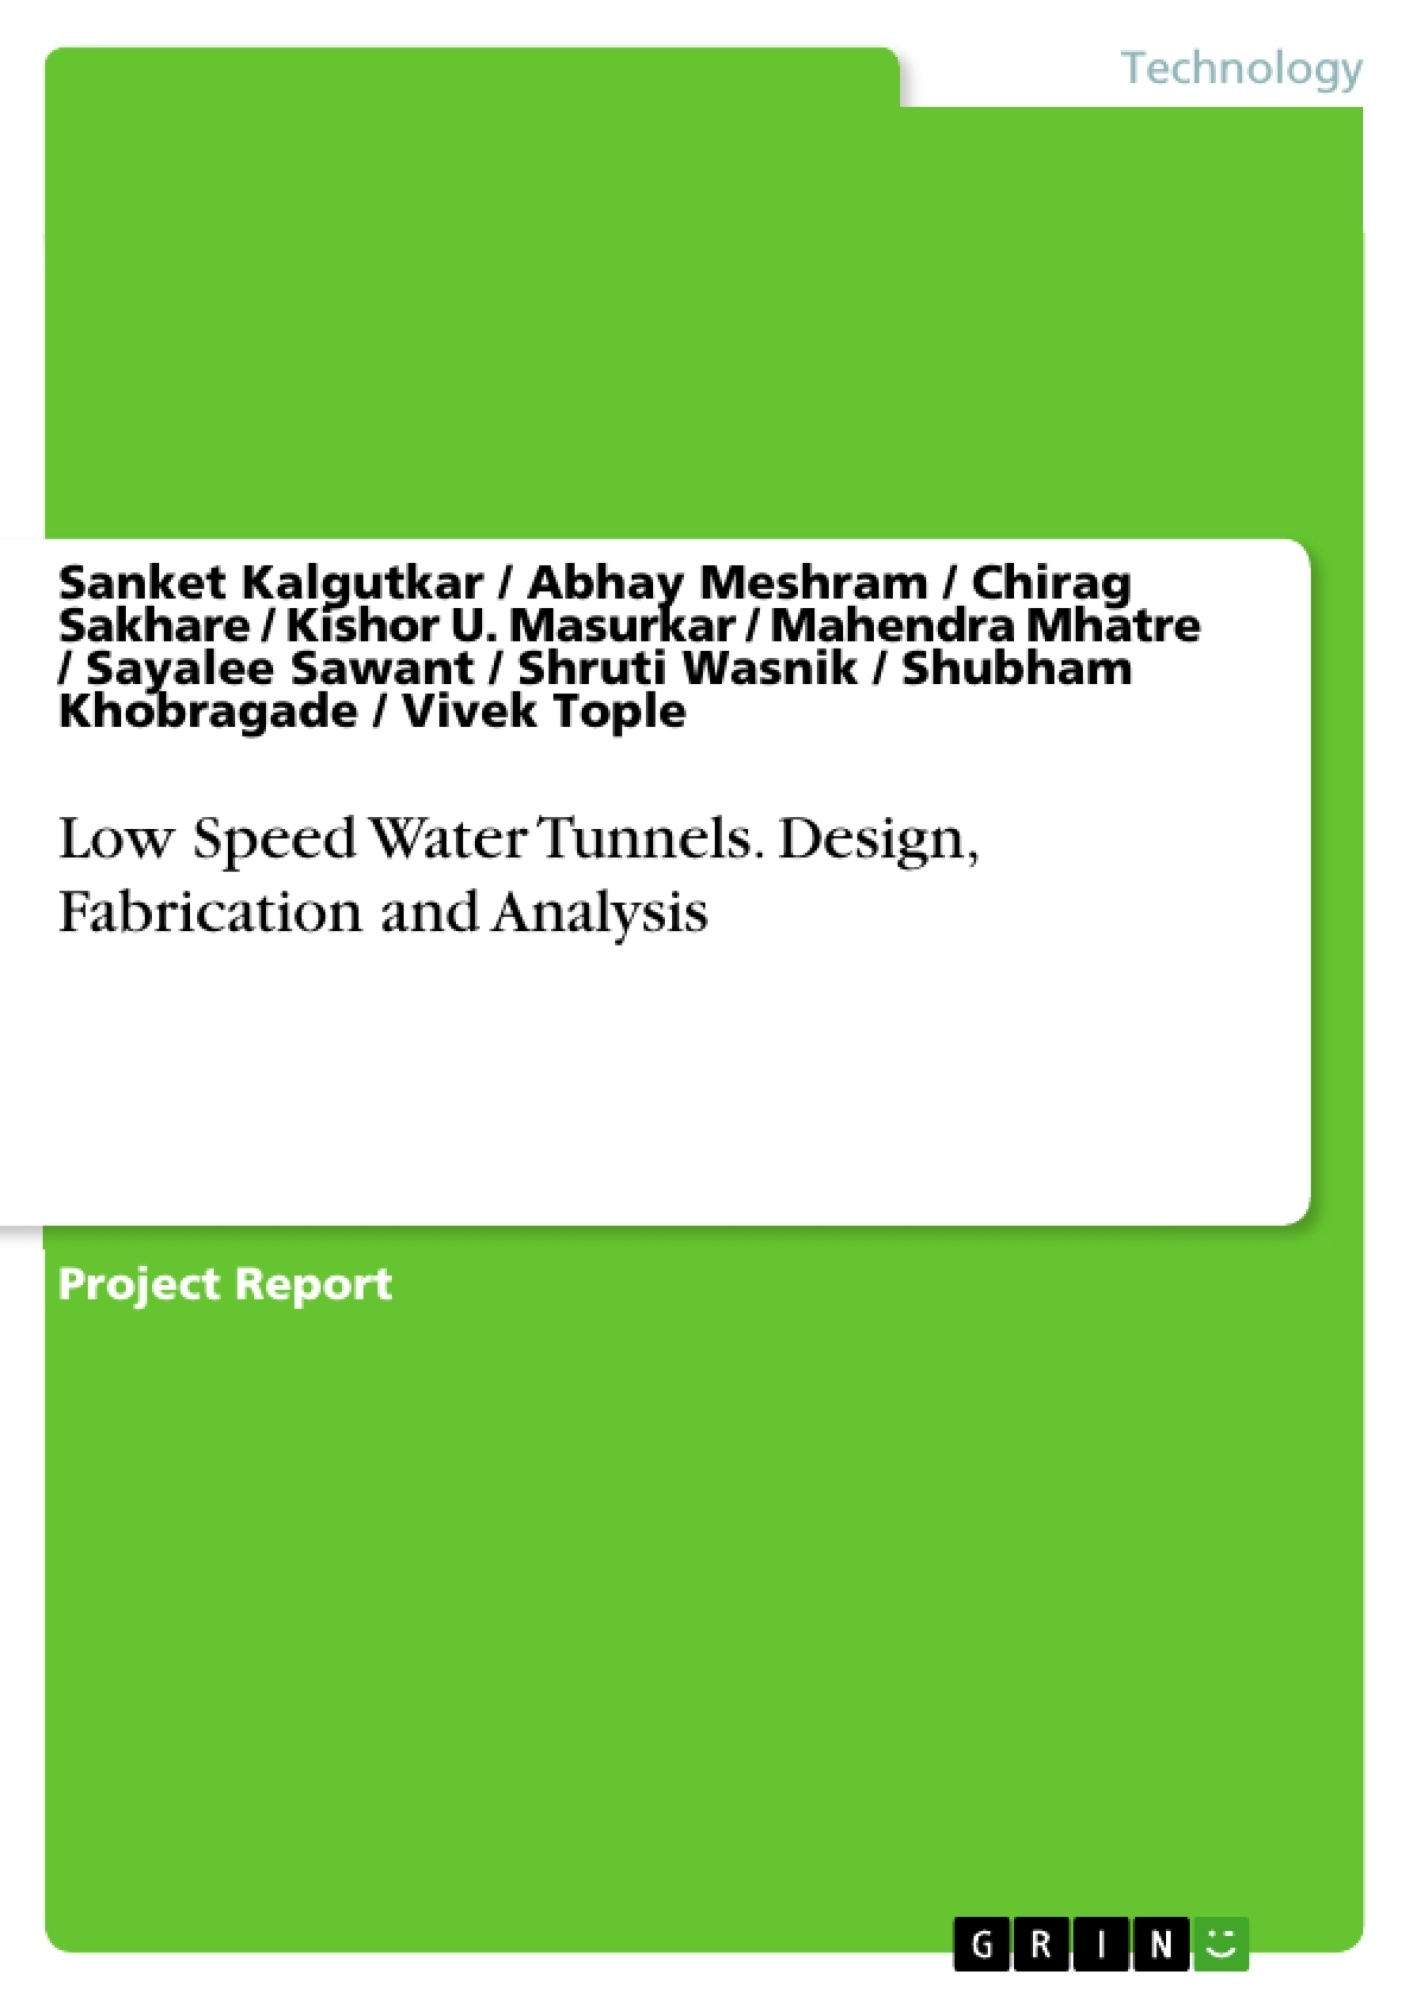 GRIN - Low Speed Water Tunnels  Design, Fabrication and Analysis